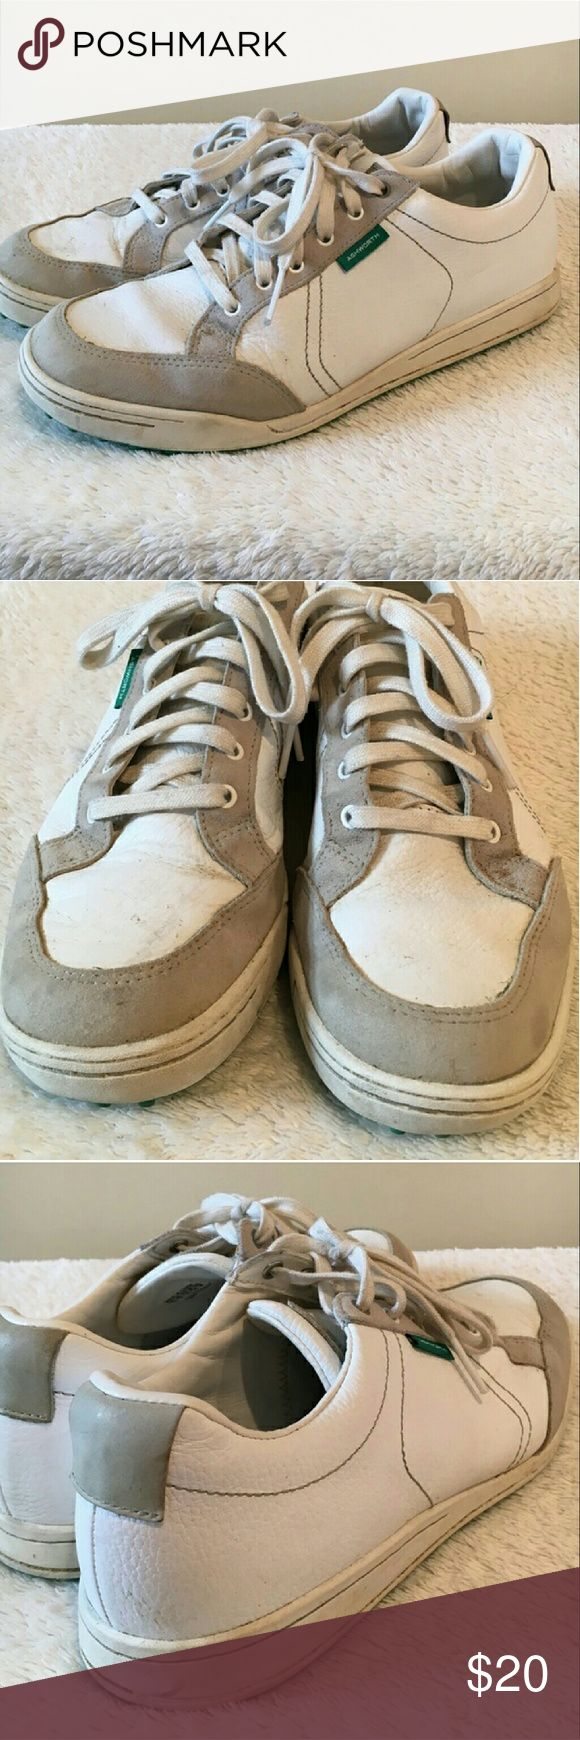 Ashworth golf shoes 🗽Good condition, need a cleaning. Ashworth  Shoes Athletic Shoes